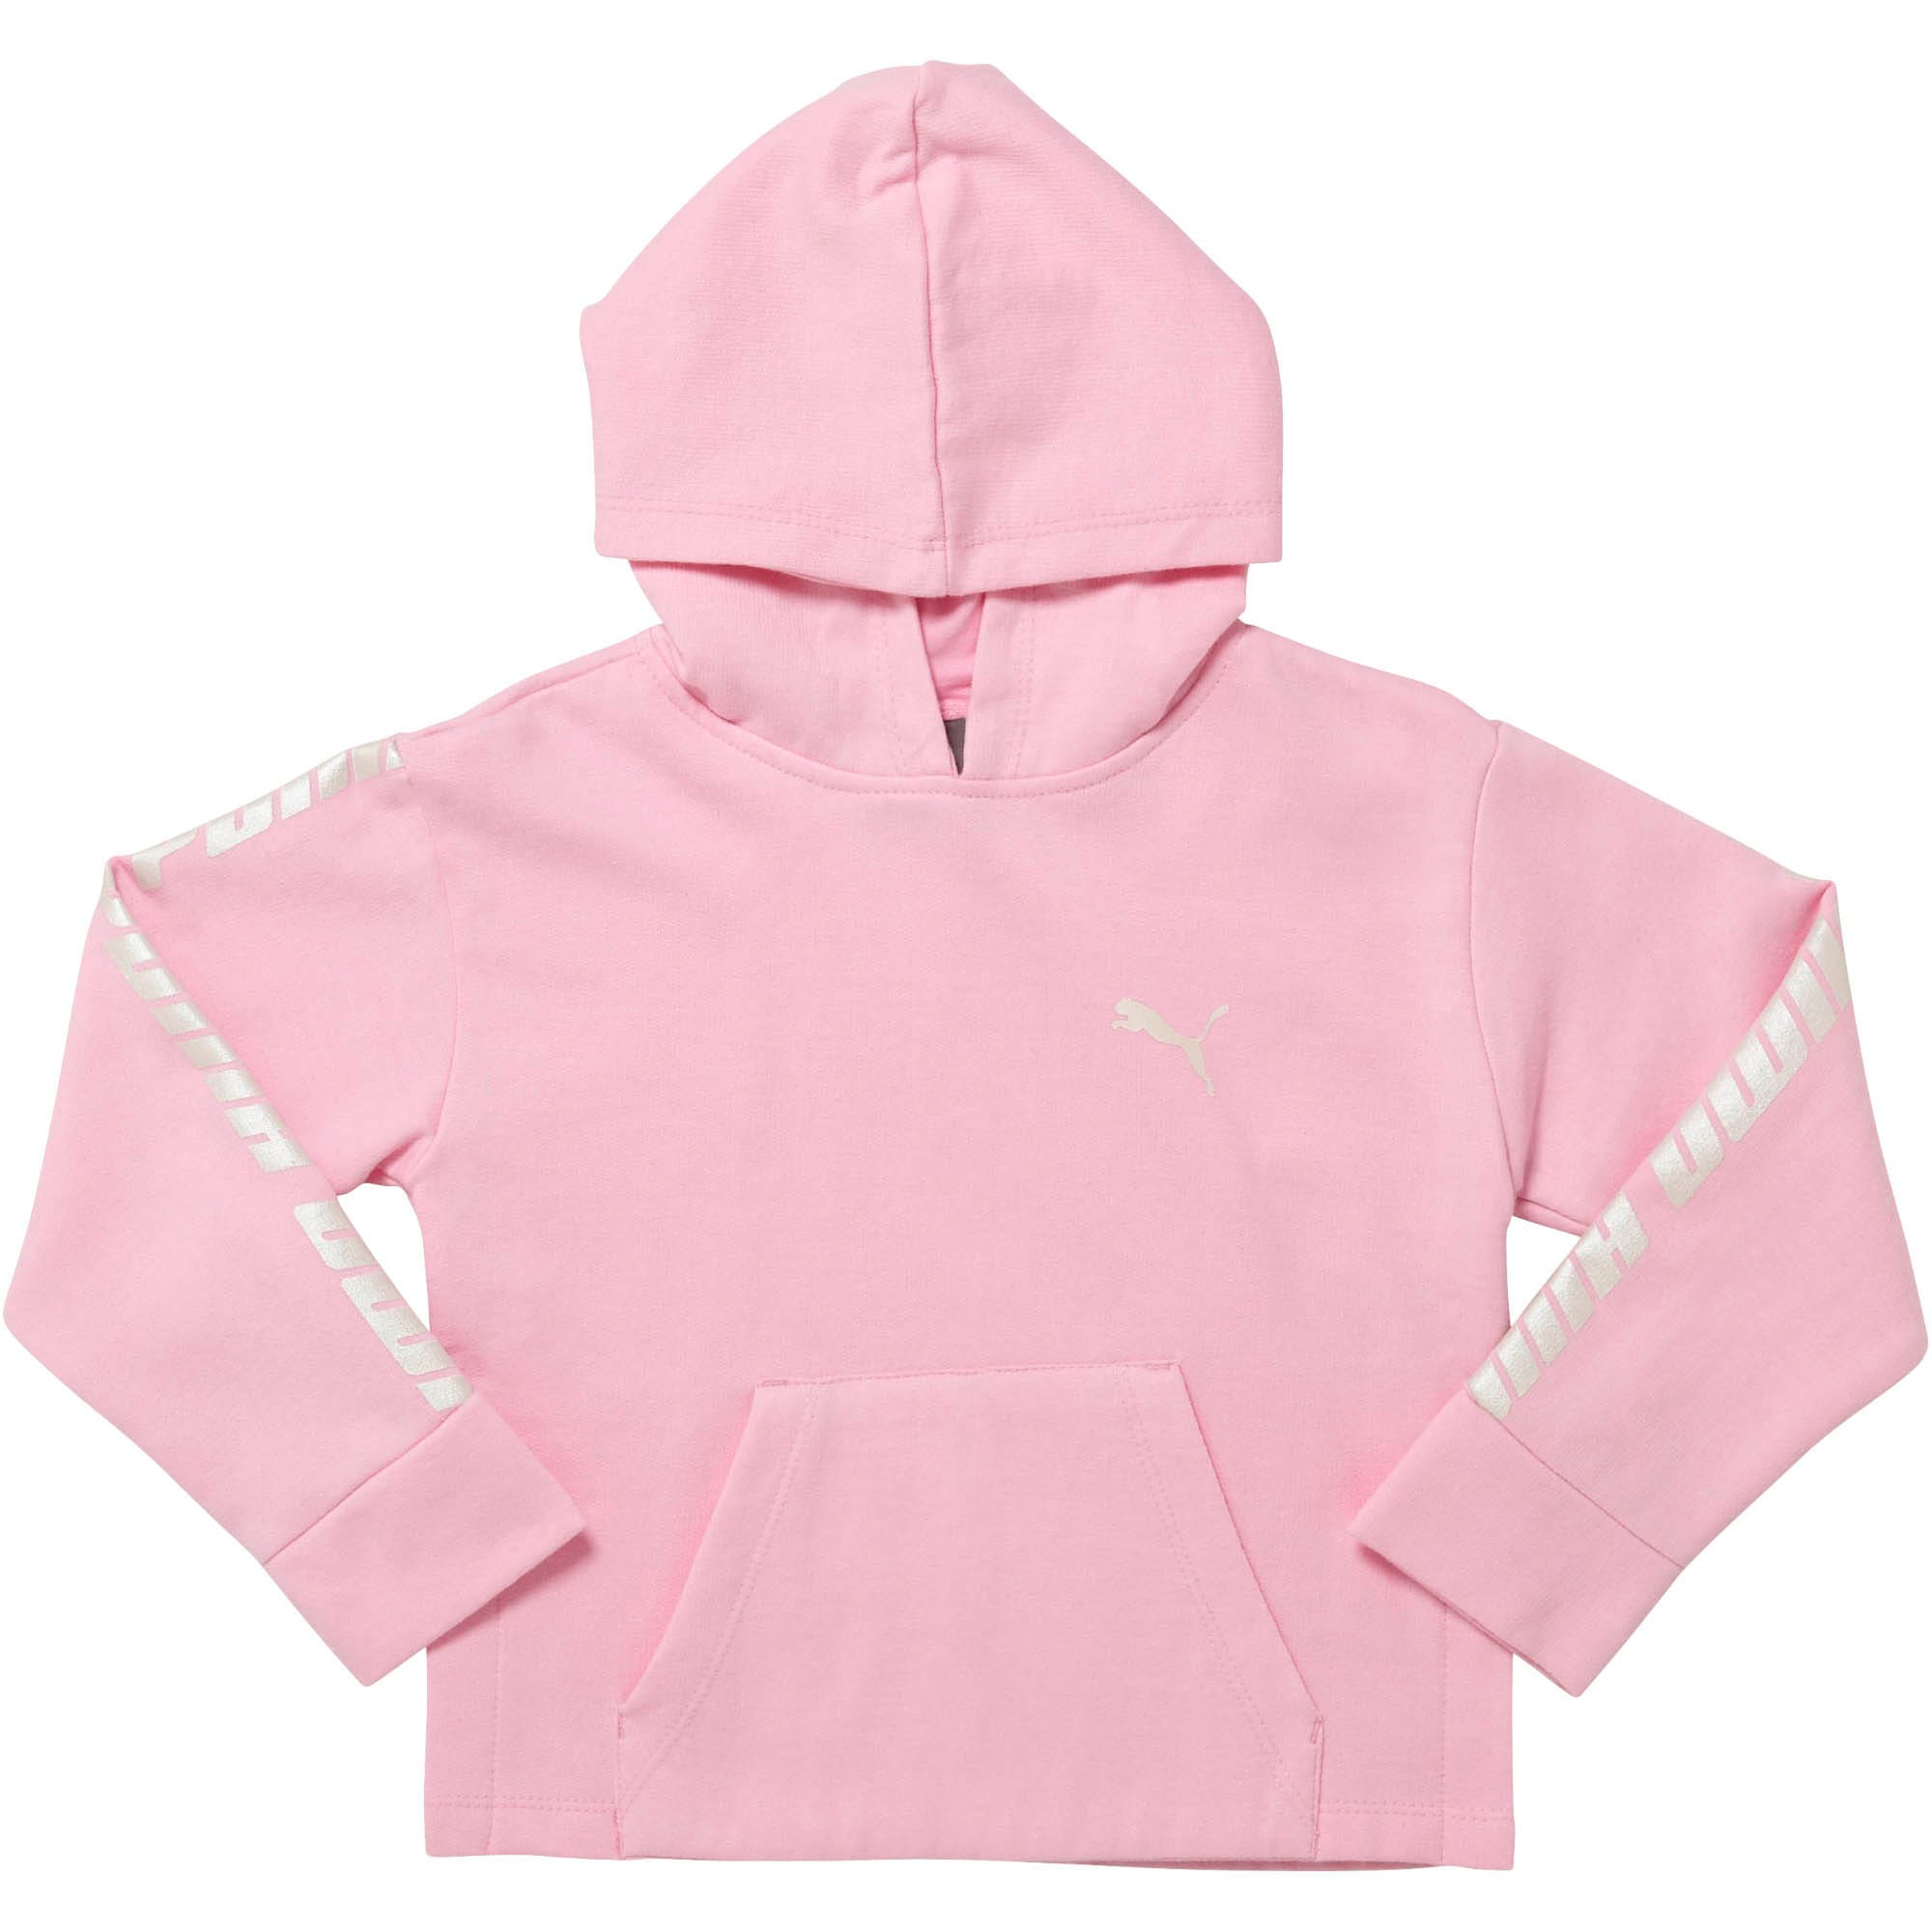 Little Kids' Fleece Pullover Hoodie, PALE PINK, large